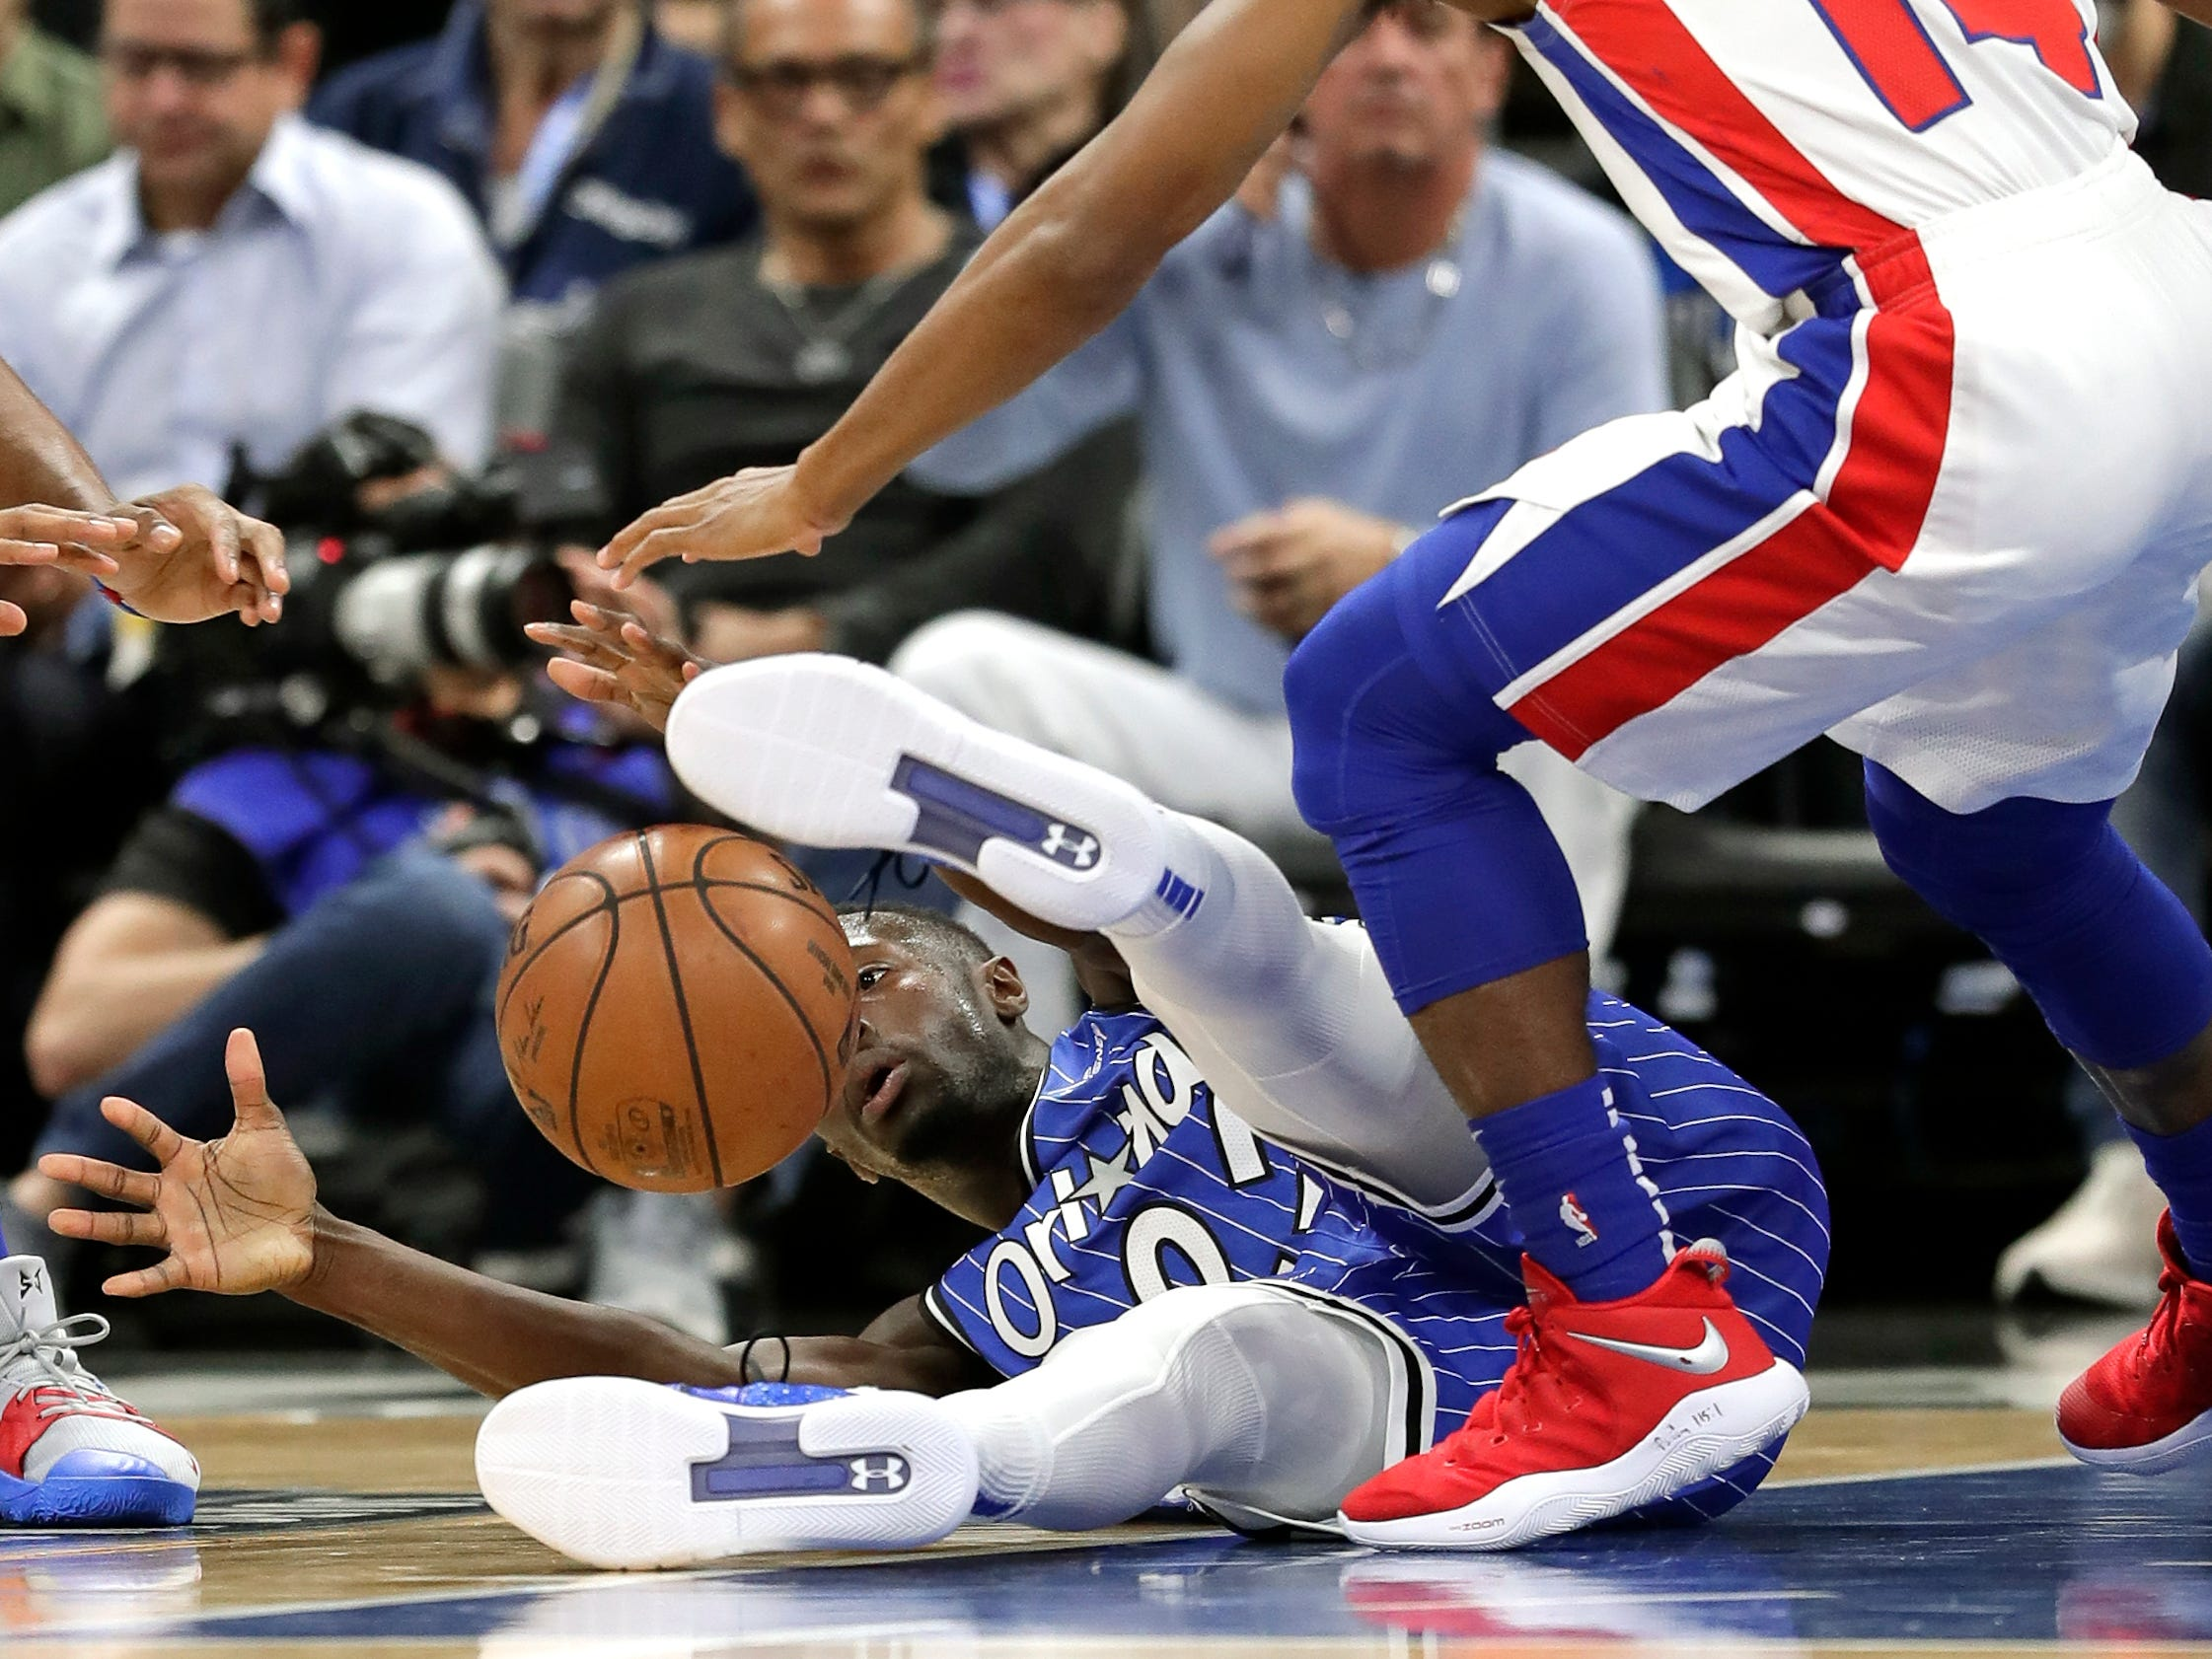 Orlando Magic's Jerian Grant, lower left, goes after a loose ball against Detroit Pistons' Ish Smith (14) during the first half of an NBA basketball game, Wednesday, Nov. 7, 2018, in Orlando, Fla.